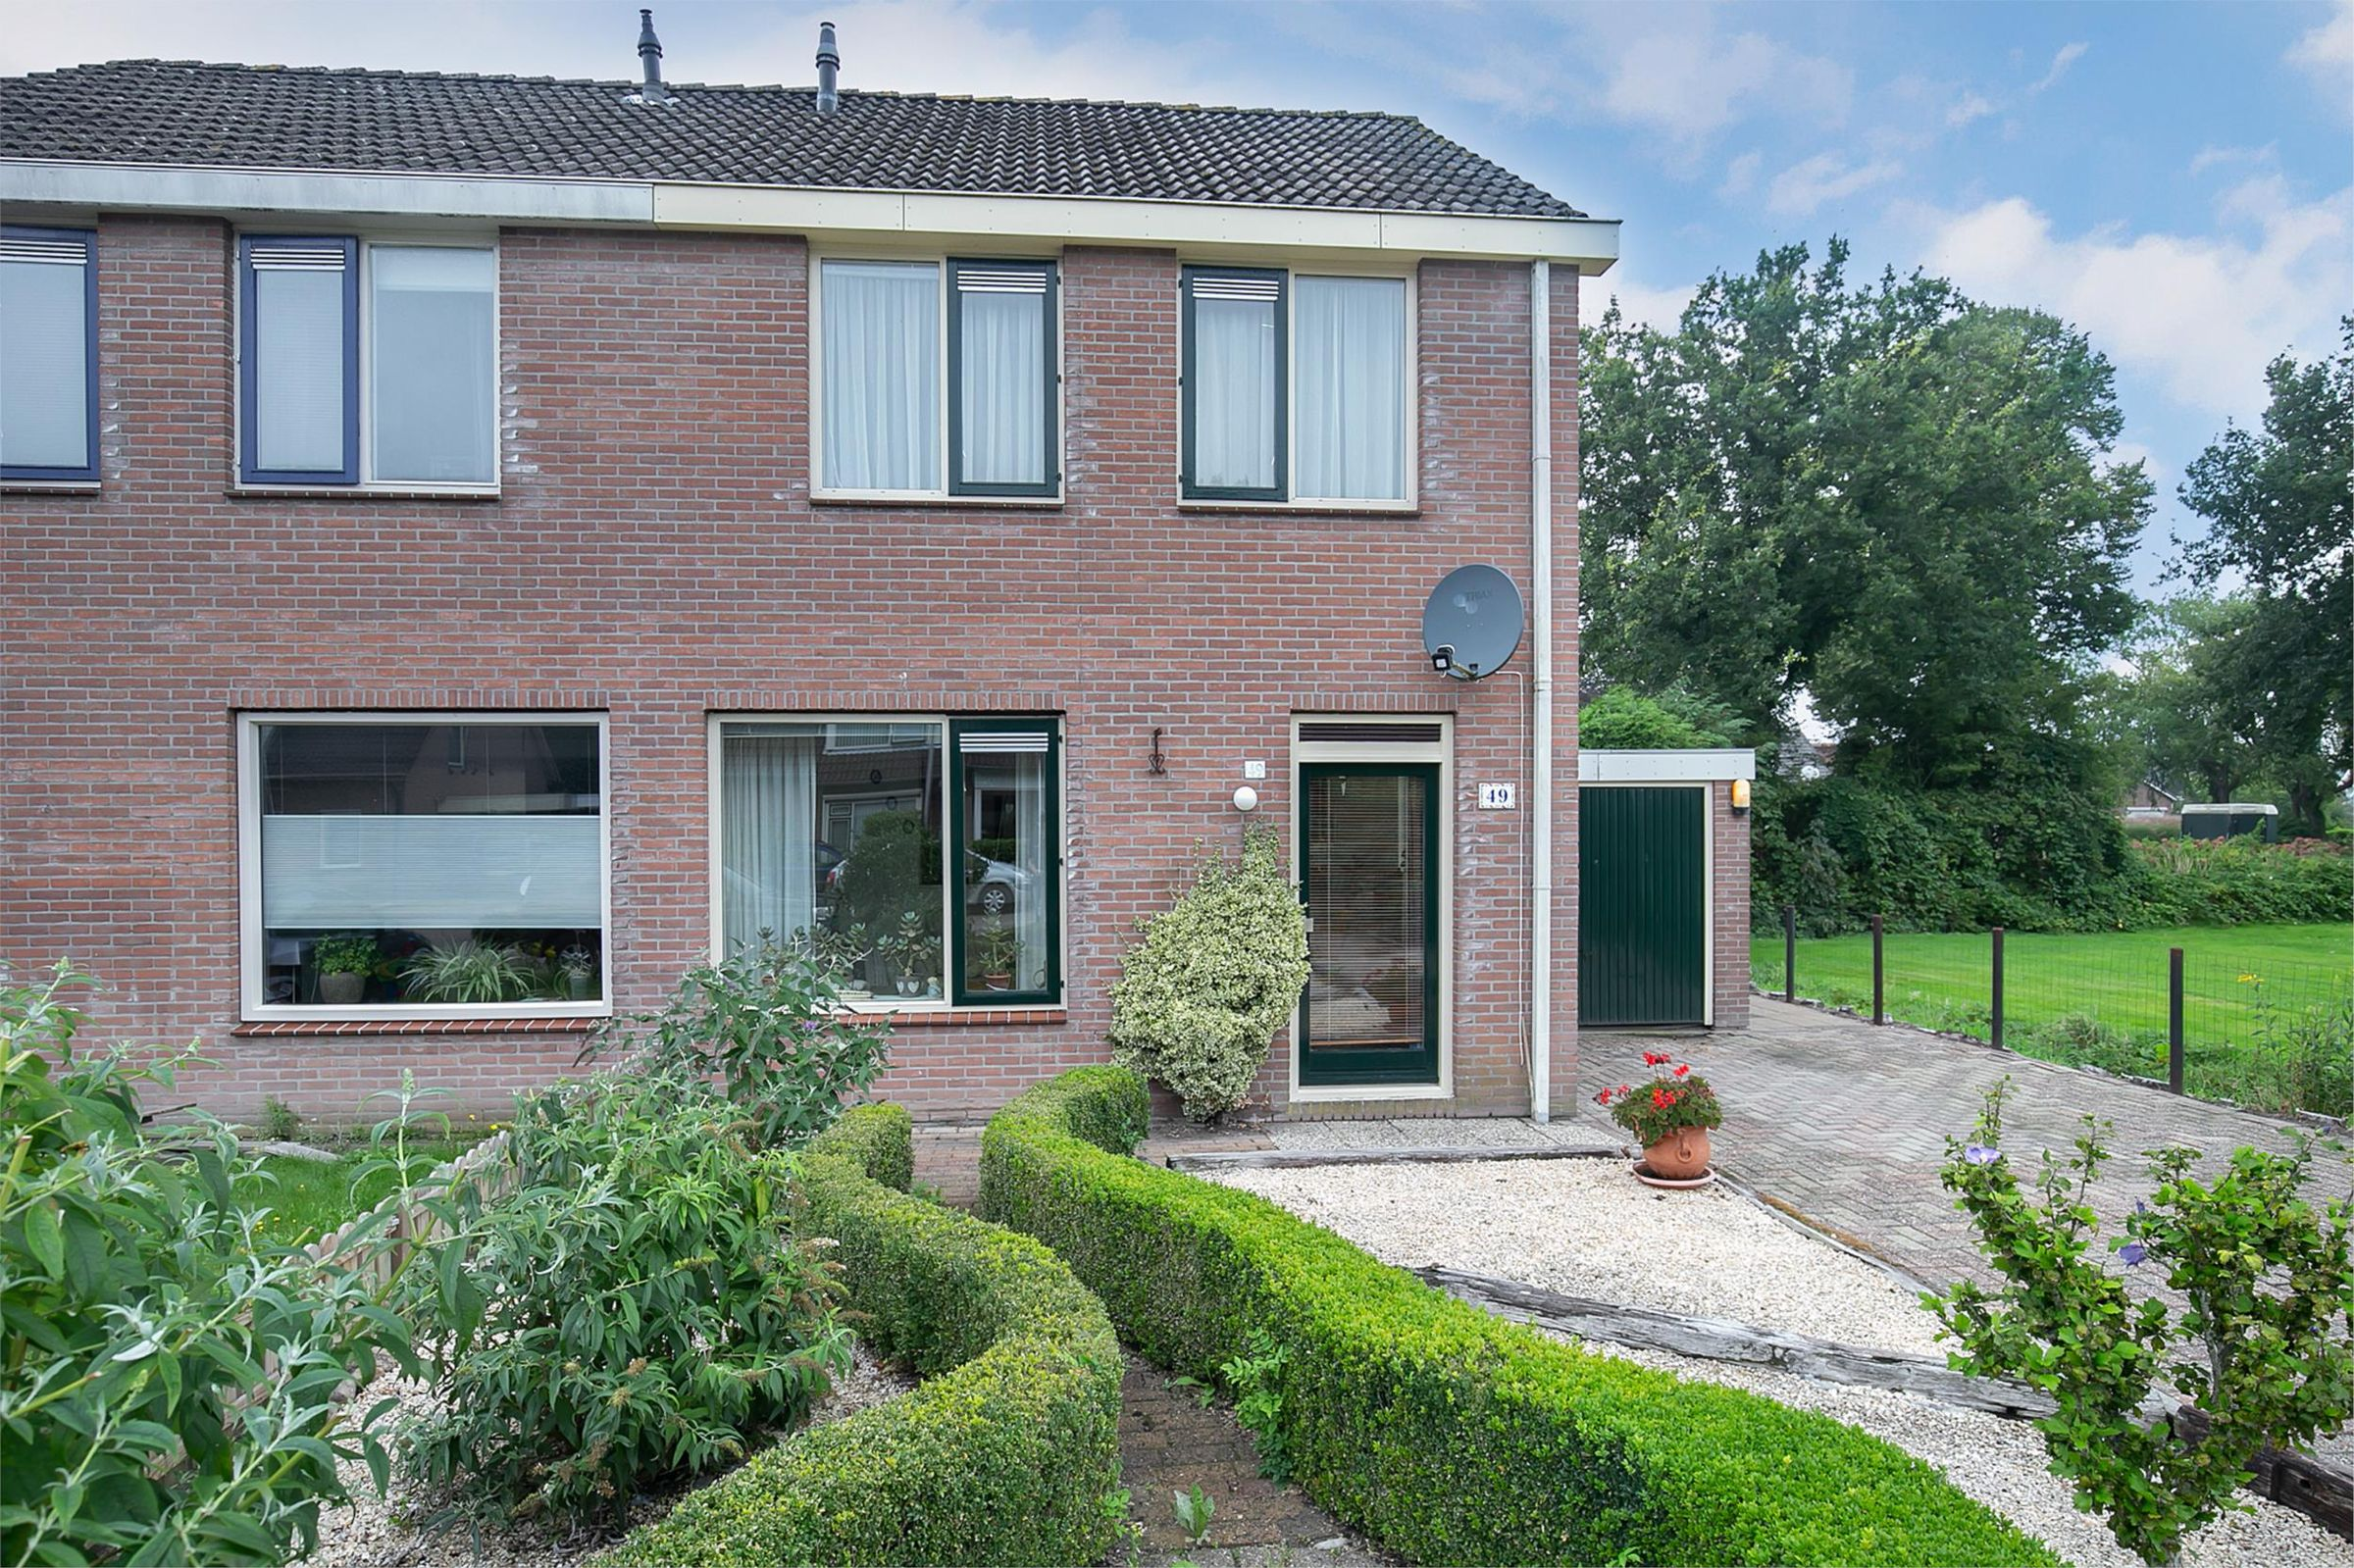 Carry van Bruggenstraat 49, Smilde